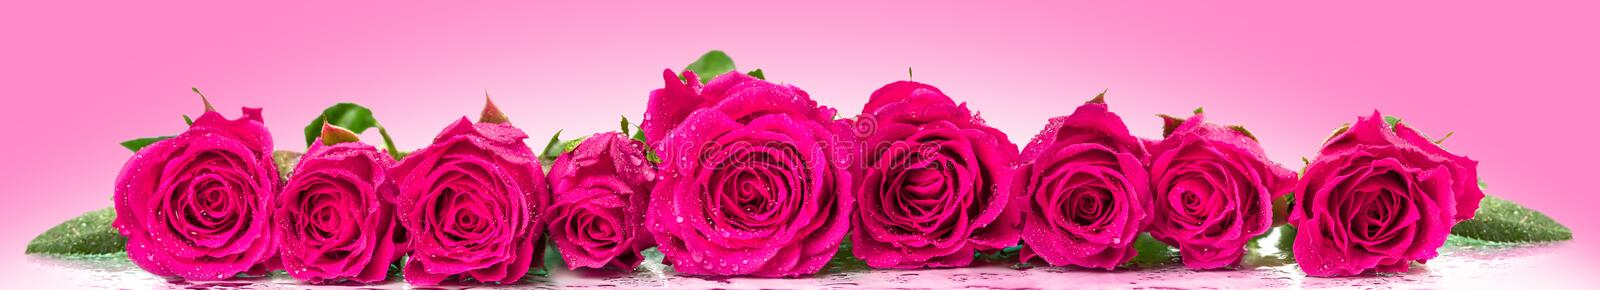 Roses in a row. royalty free stock images